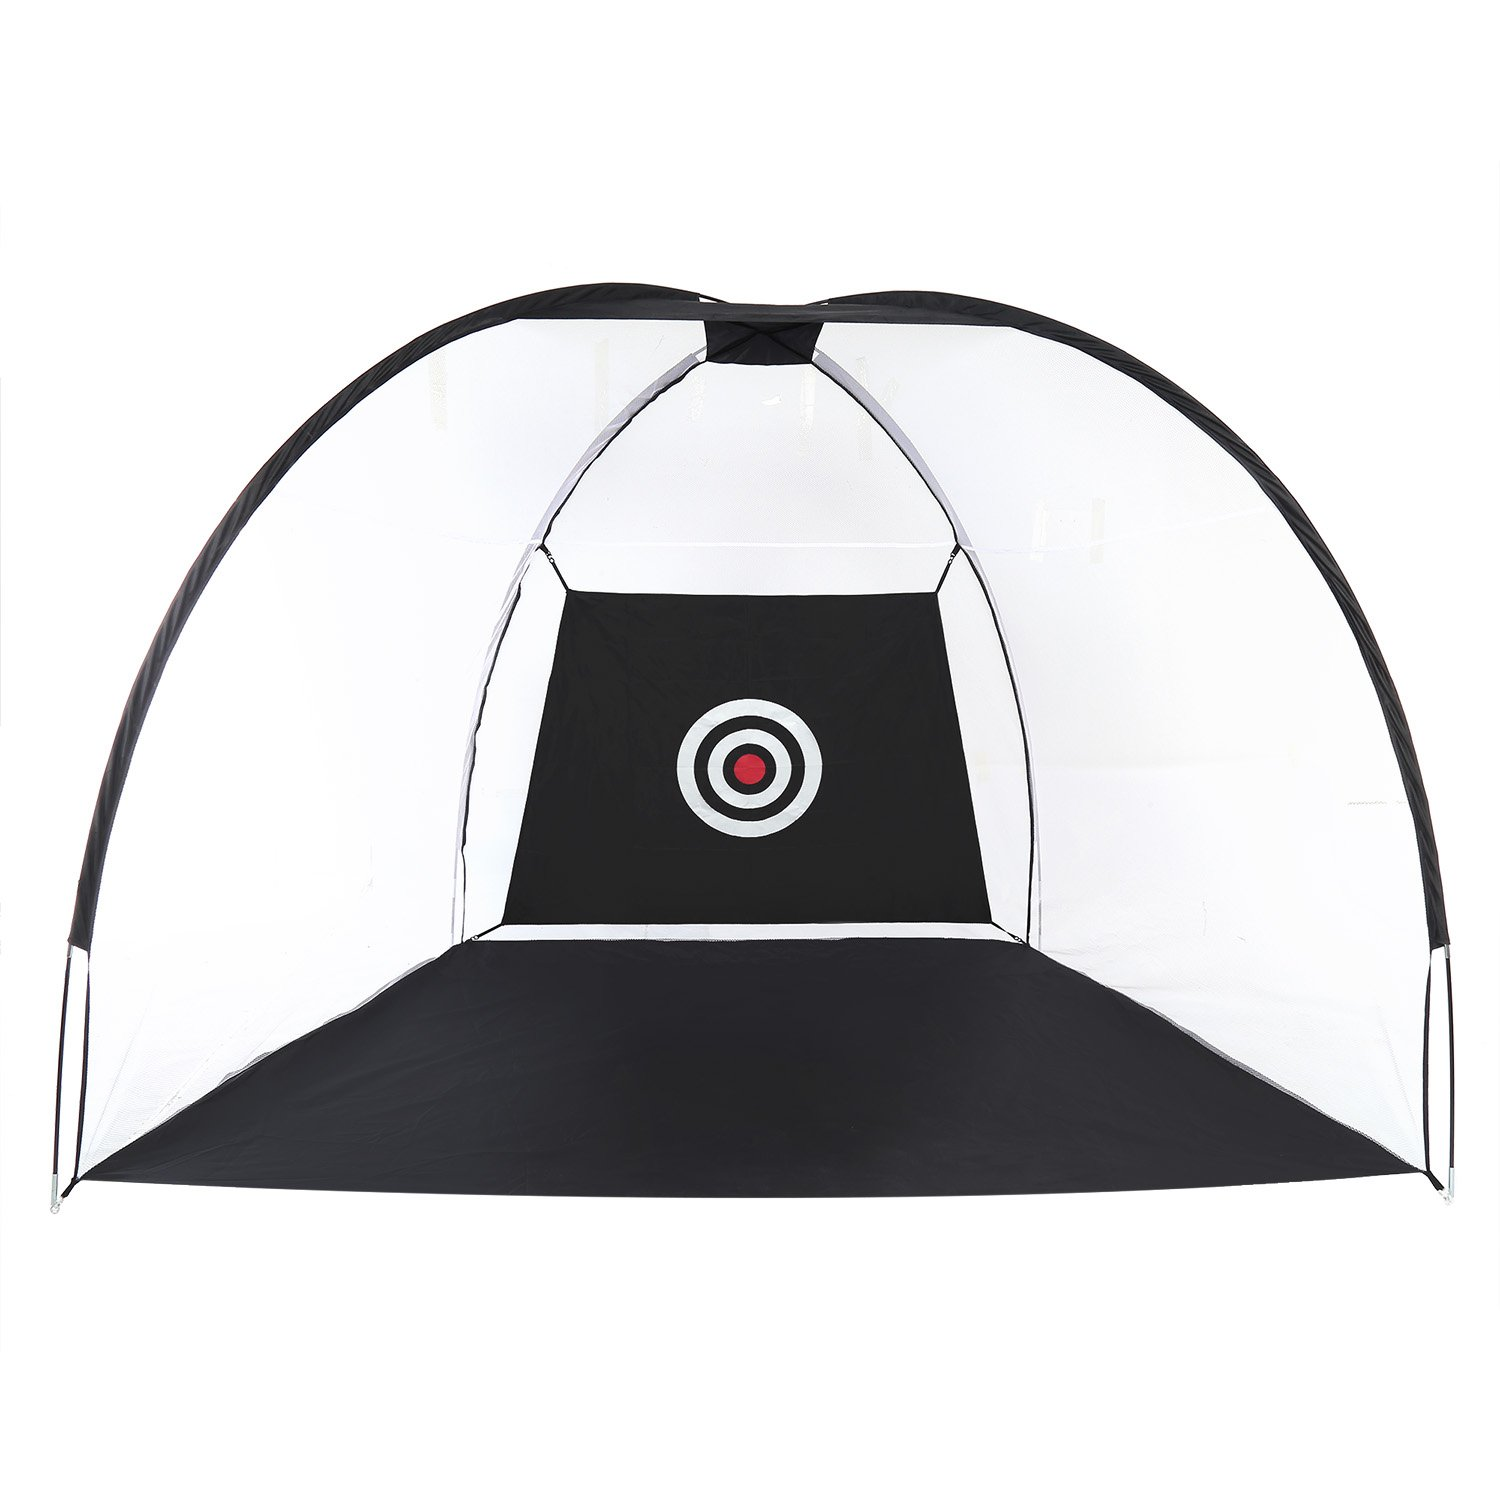 OUTCAMER Golf Hitting Net 10 x 7 ft Collapsible Portable Golf Practice Driving Net for Backyard Training Indoor and Outdoor by OUTCAMER (Image #1)